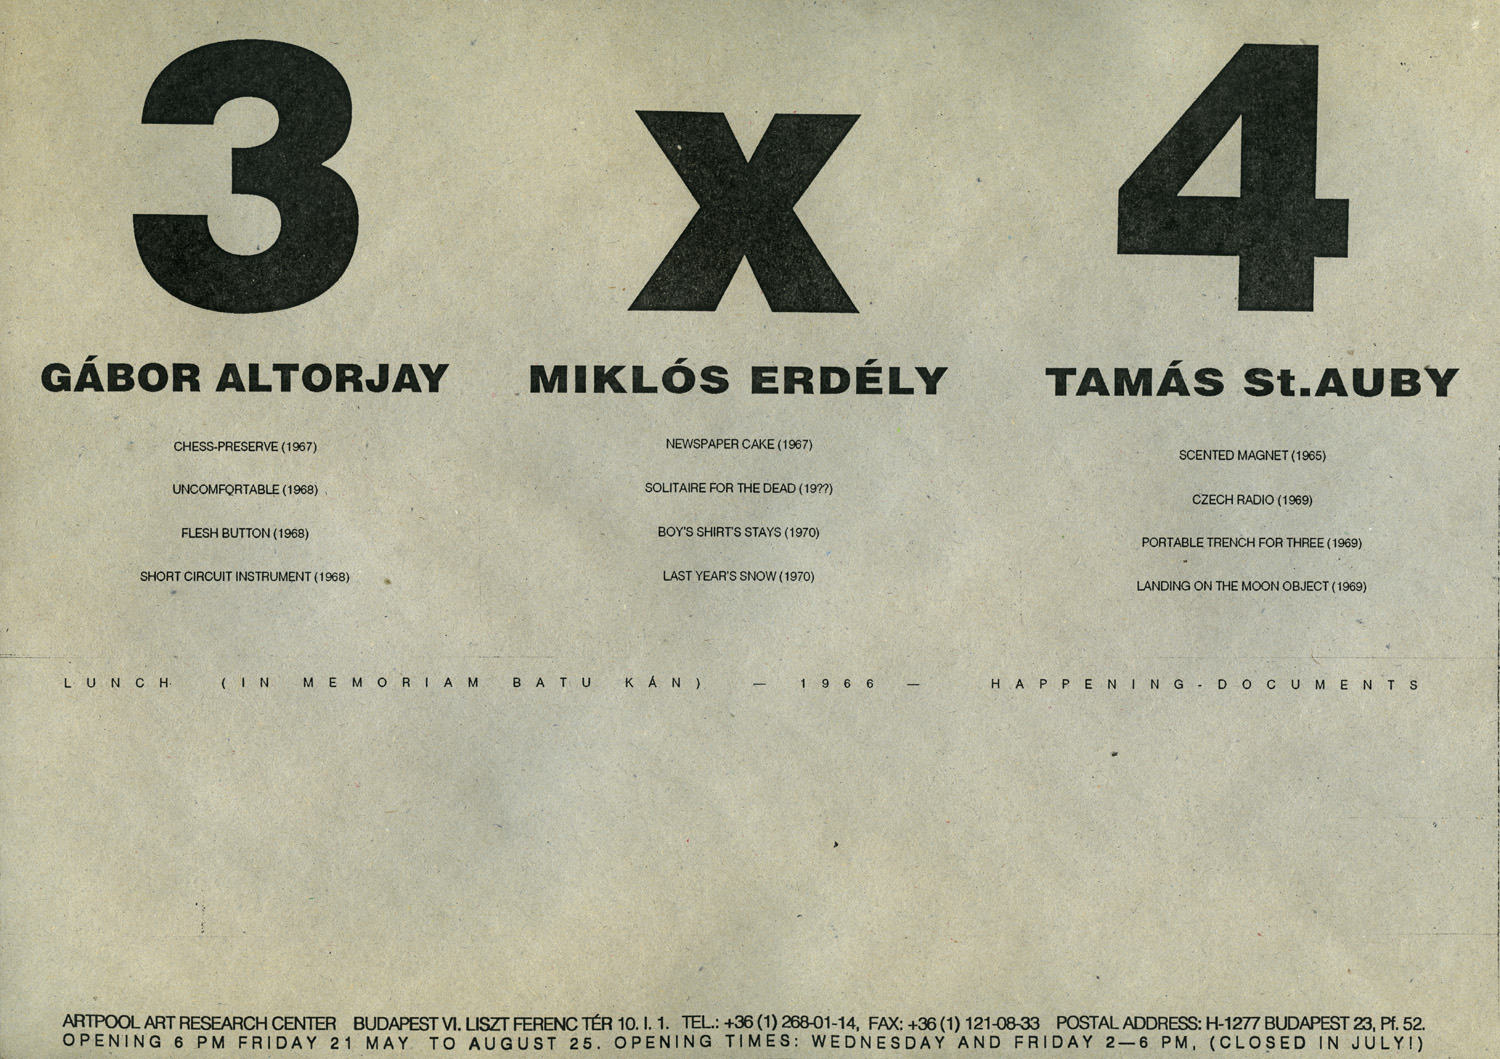 Invitation  for  the exhibition 3 x 4, Artpool Art Research Center, Budapest, 1993 (English and Hungarian version)